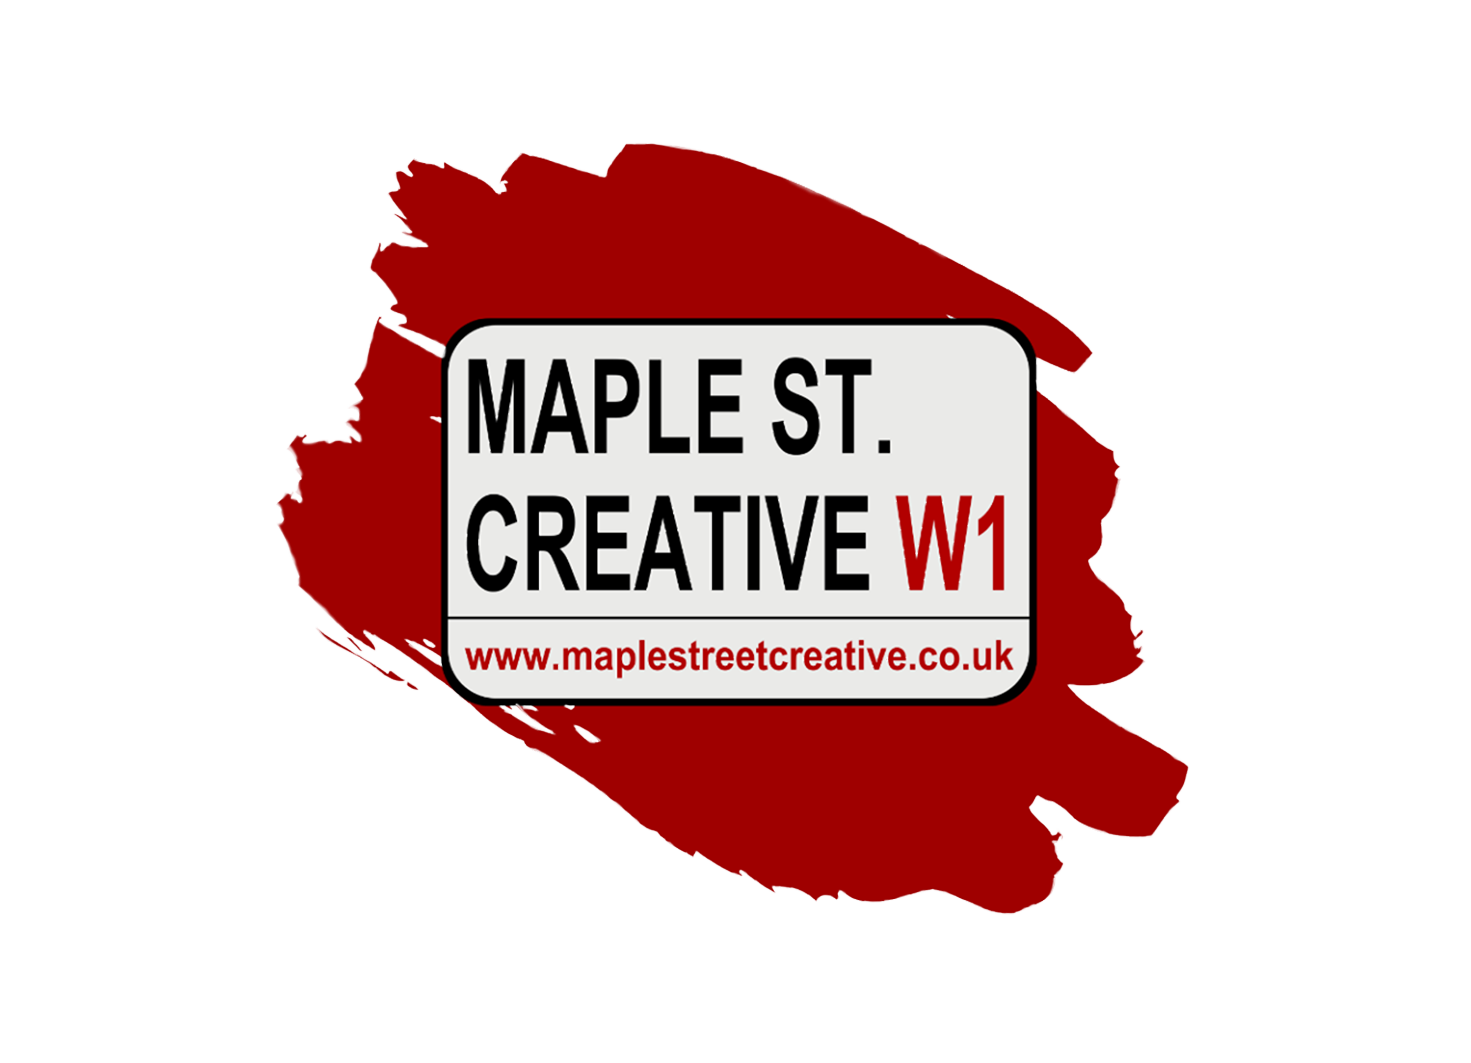 Maple Street Creative